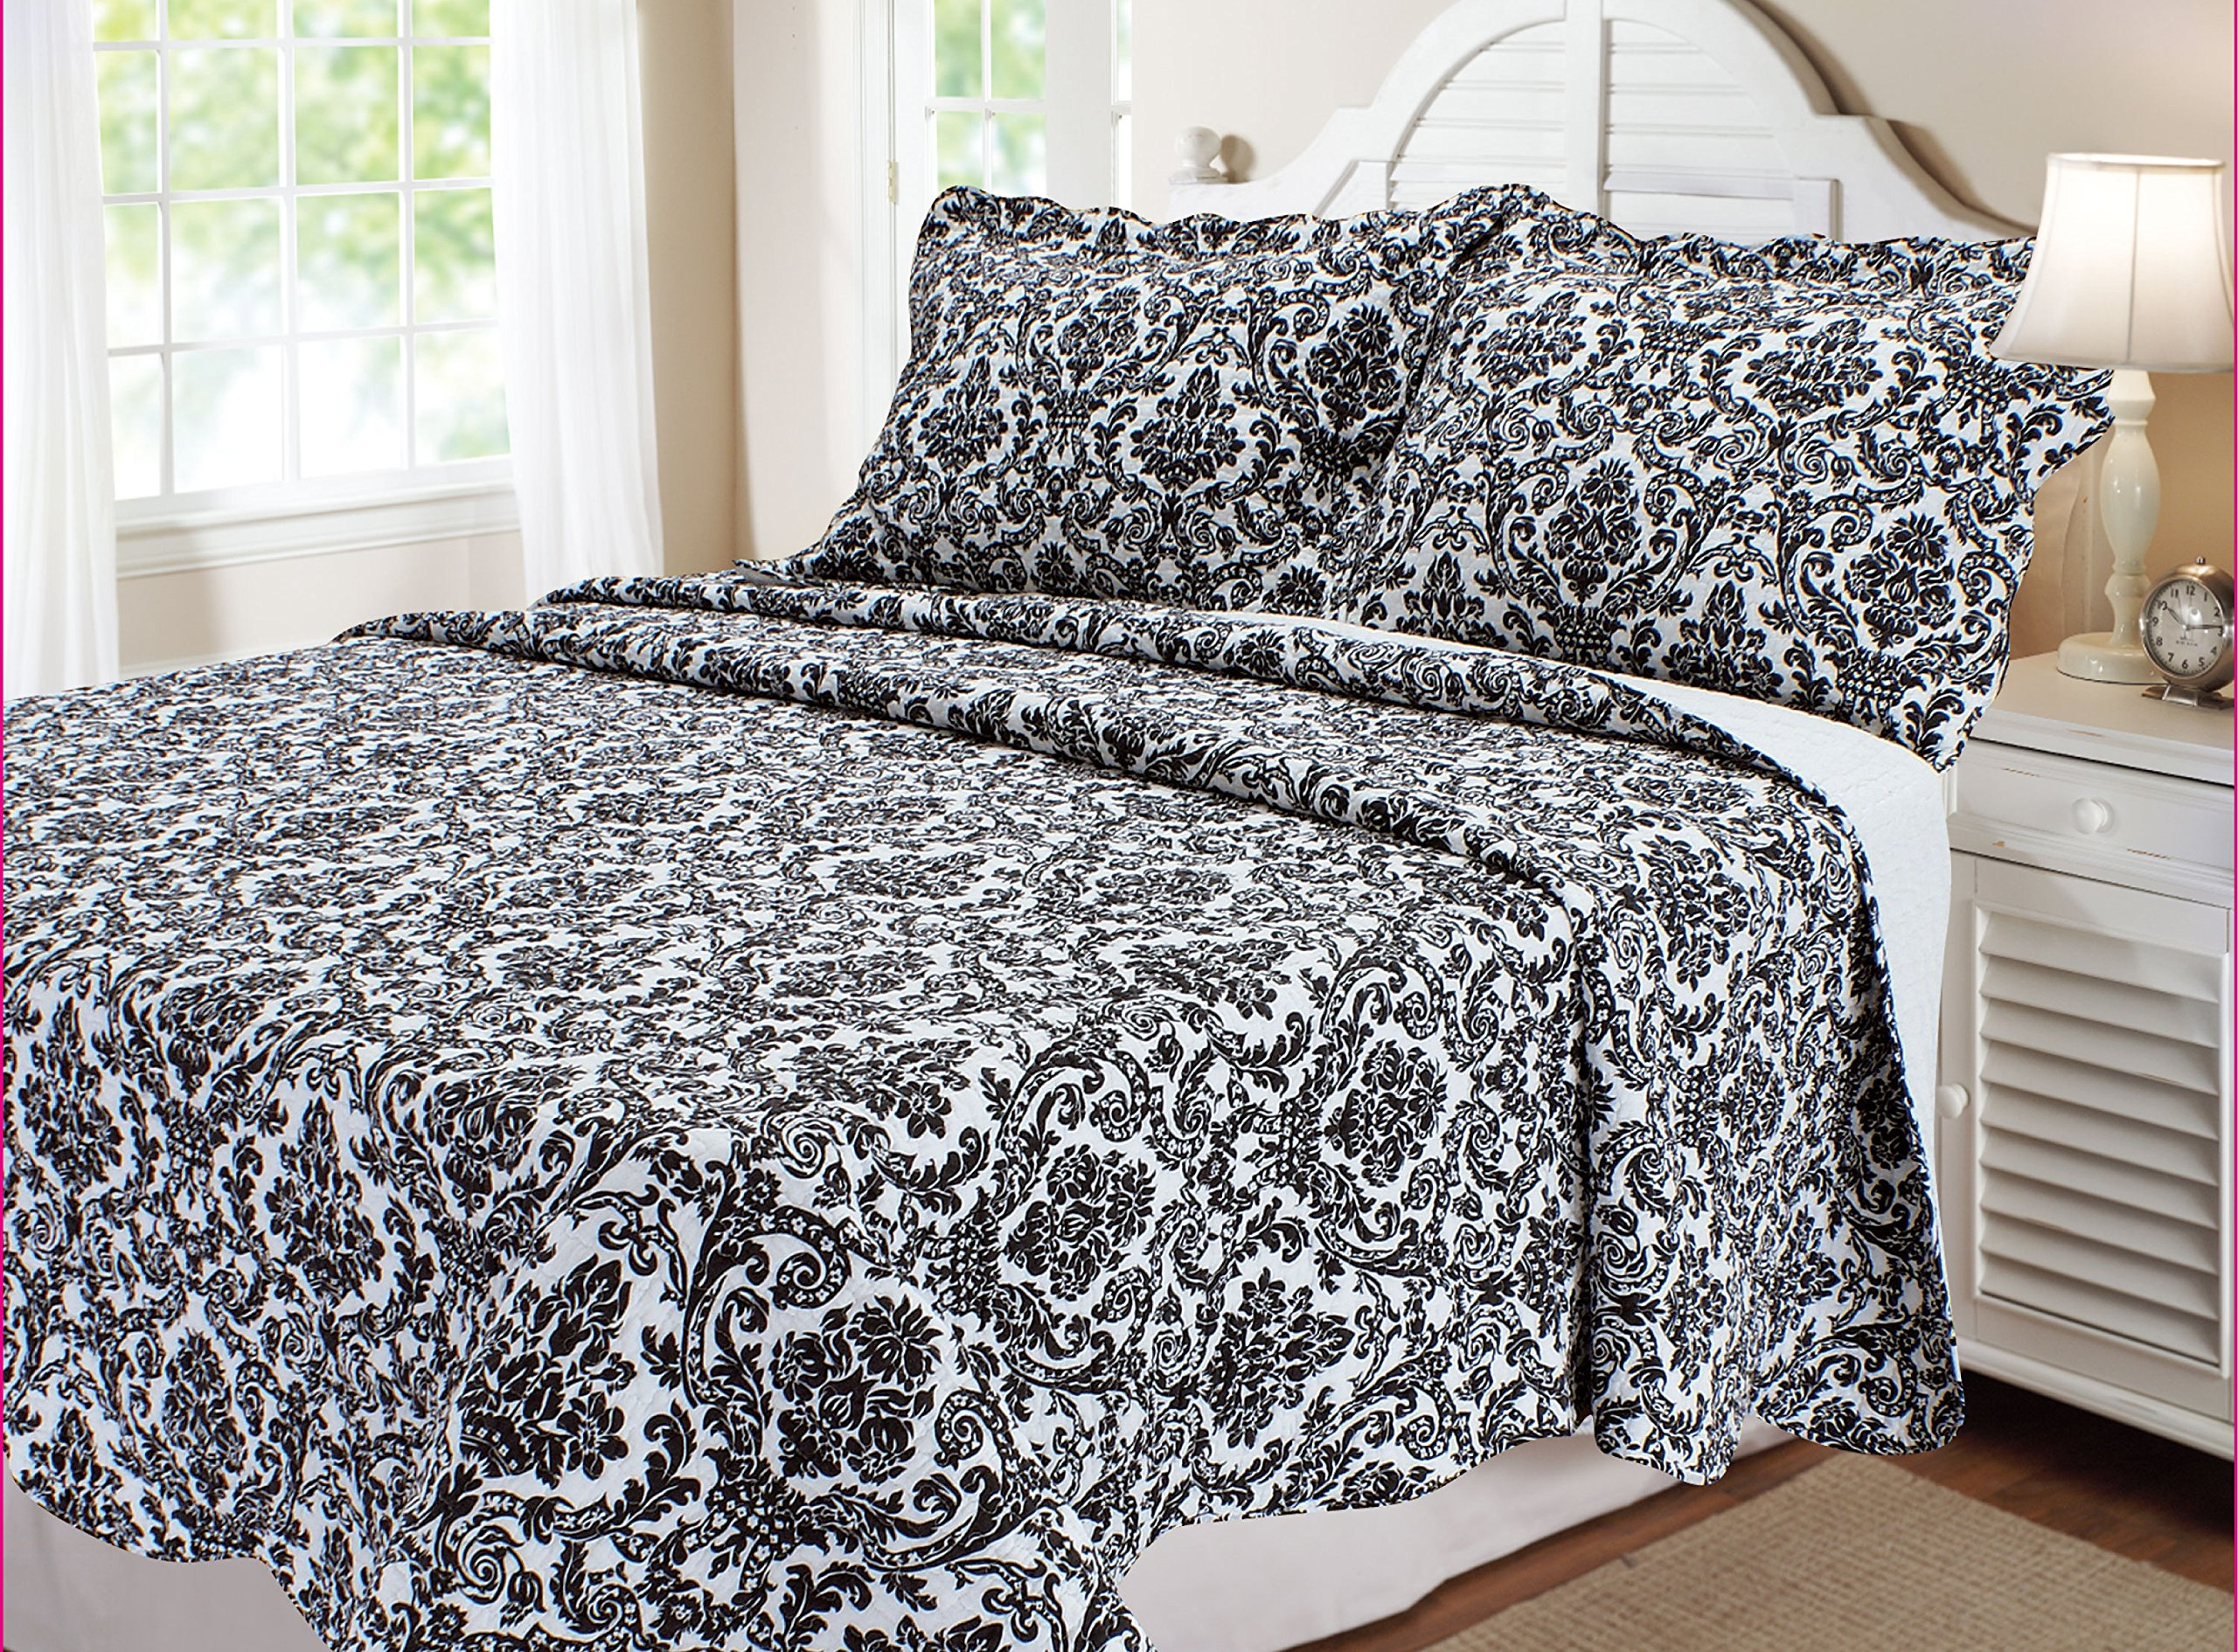 barn grey duvet covers pillow decoration floral black chic bed du cover ideas queen for paris white bedroom denim twin sham whats pottery a karan comfortable bedding donna